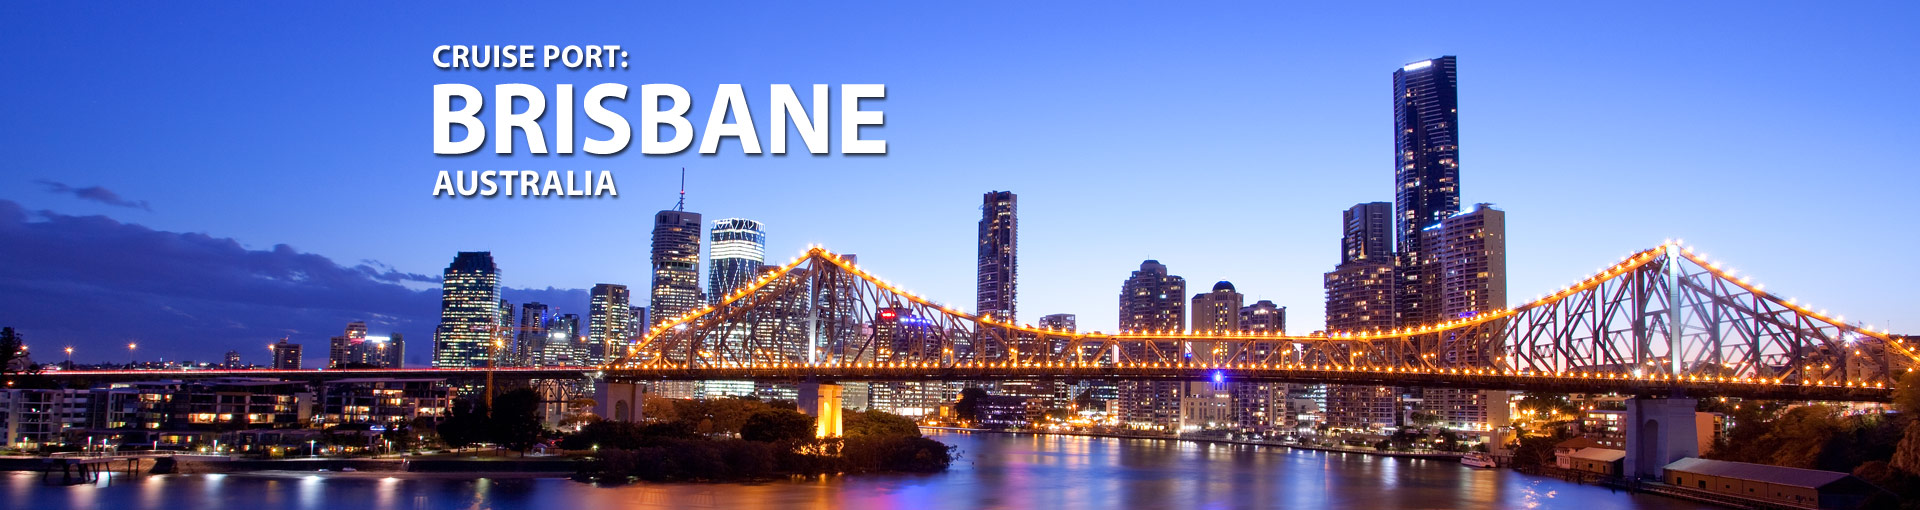 Cruises from Brisbane, Australia